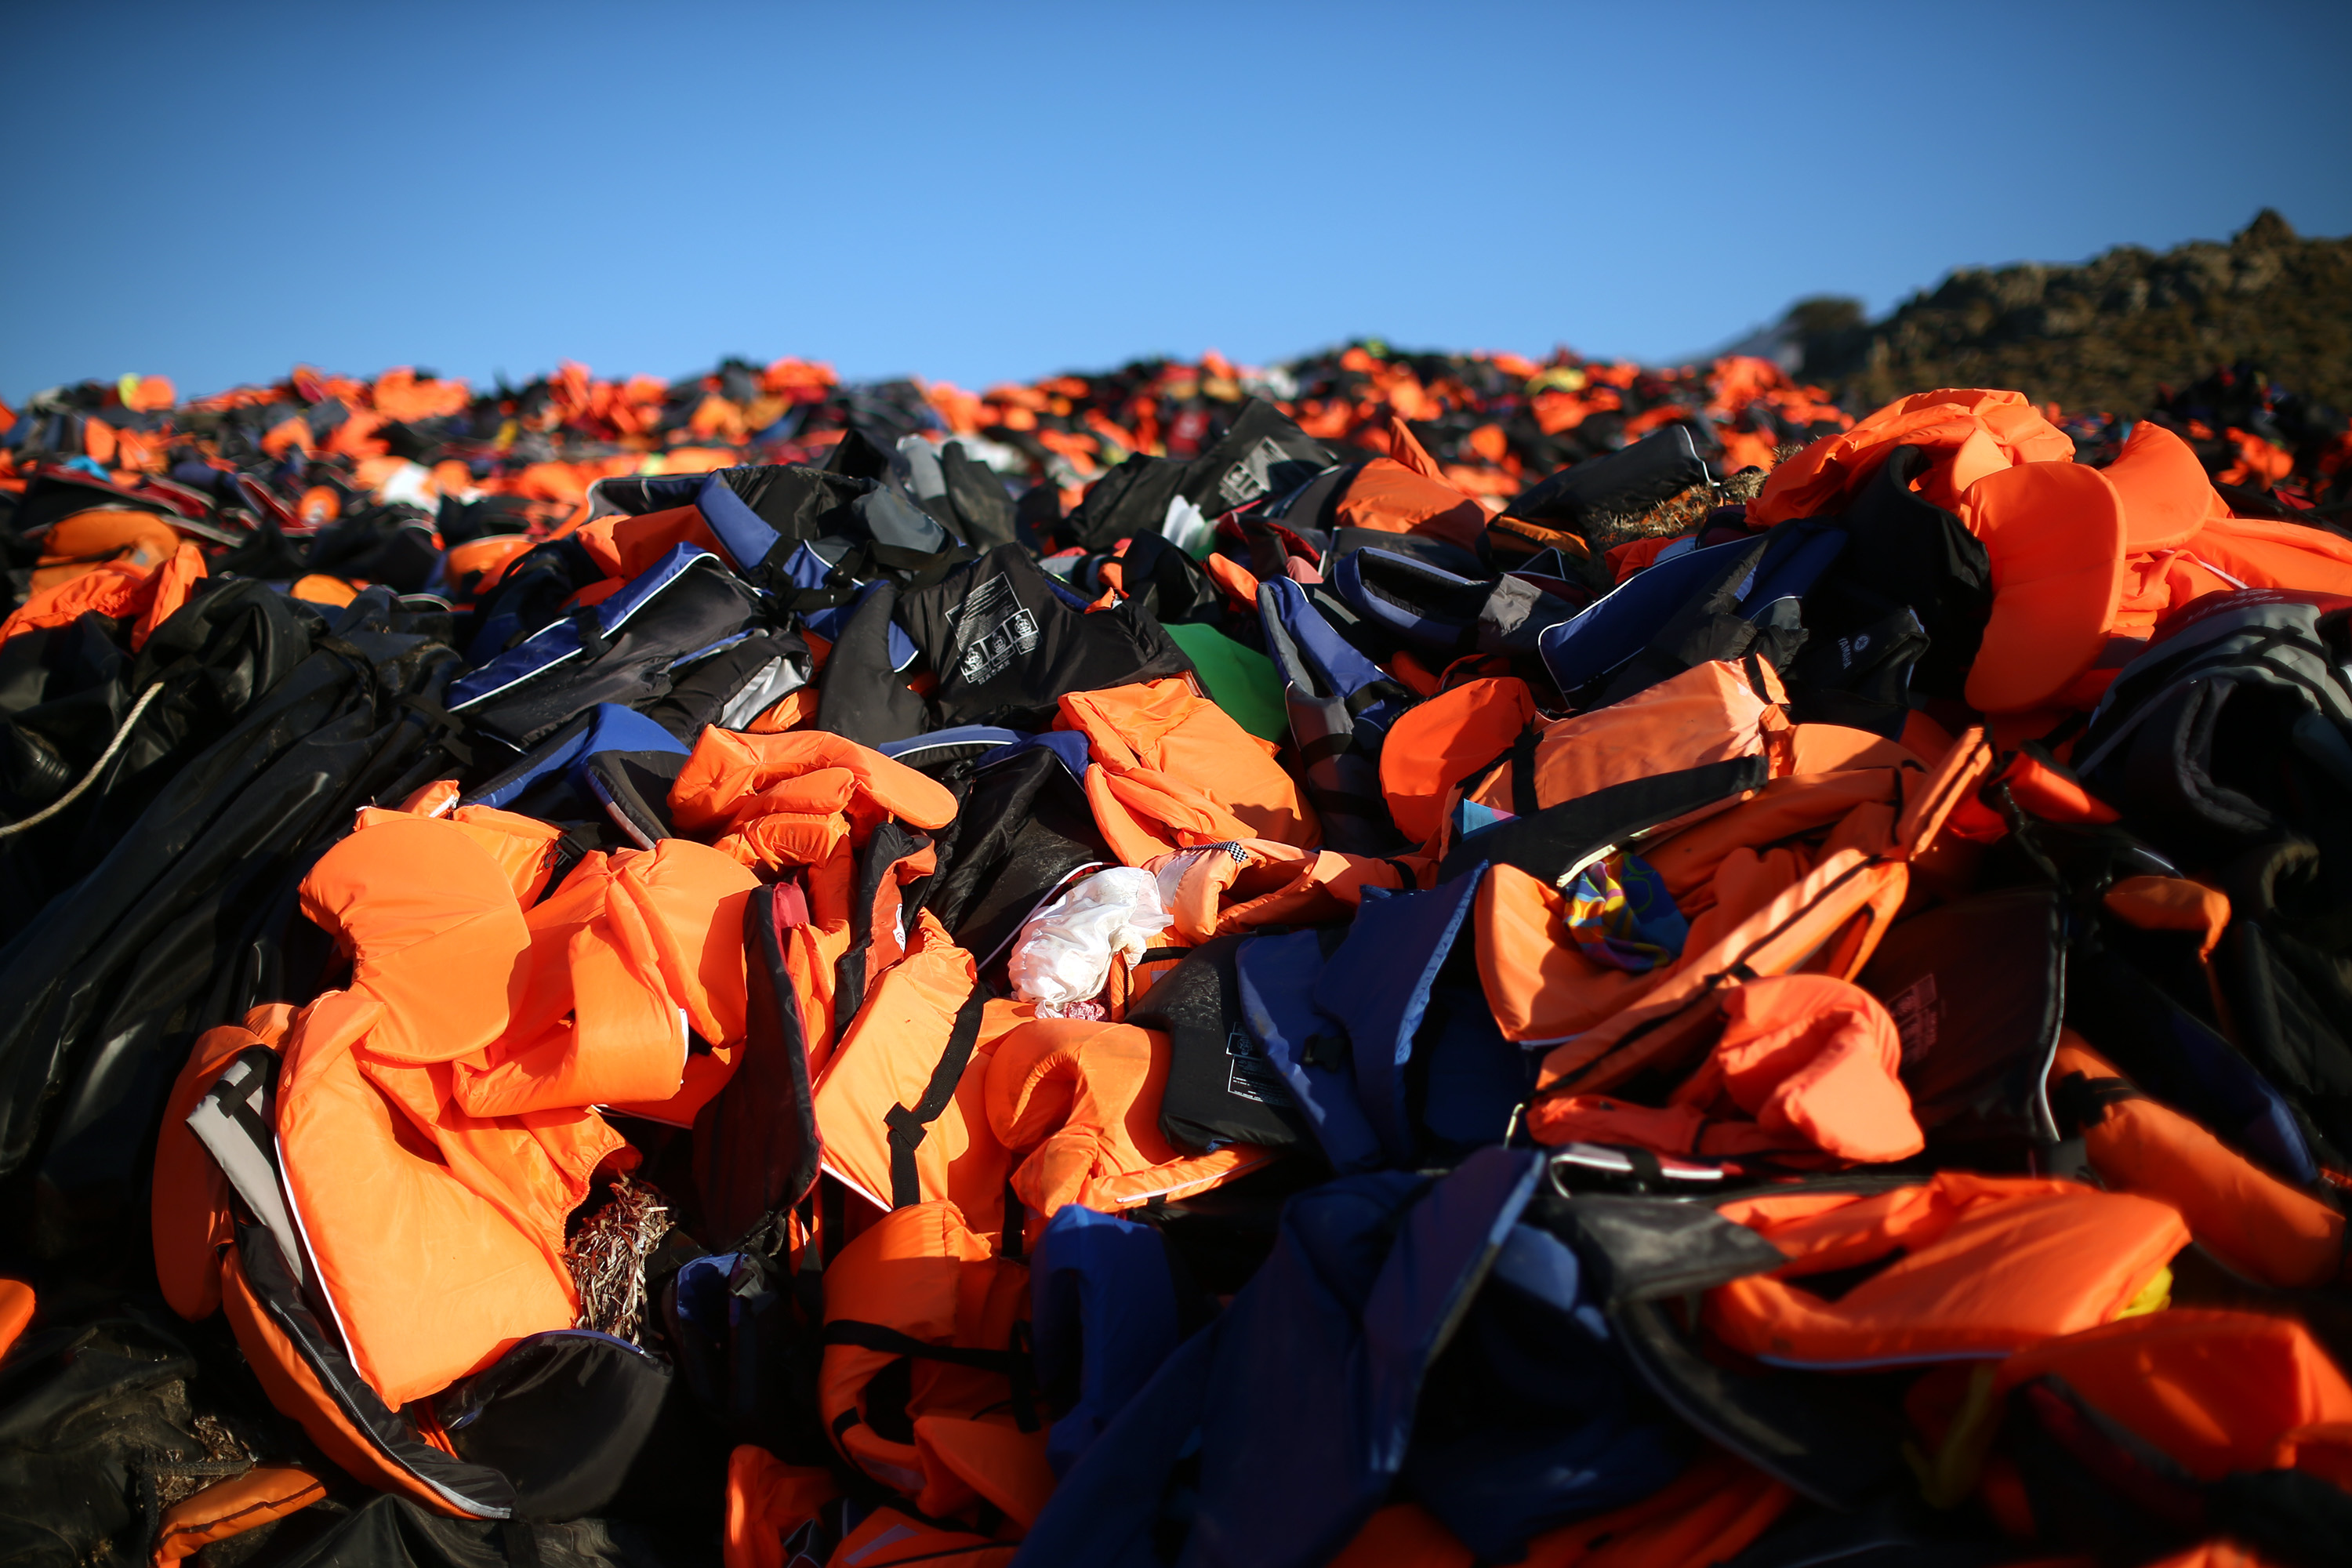 Life jackets abandoned by migrants who have made the crossing from Turkey to the Greek island of Lesvos are dumped on November 13, 2015 in Mithymna, Greece.